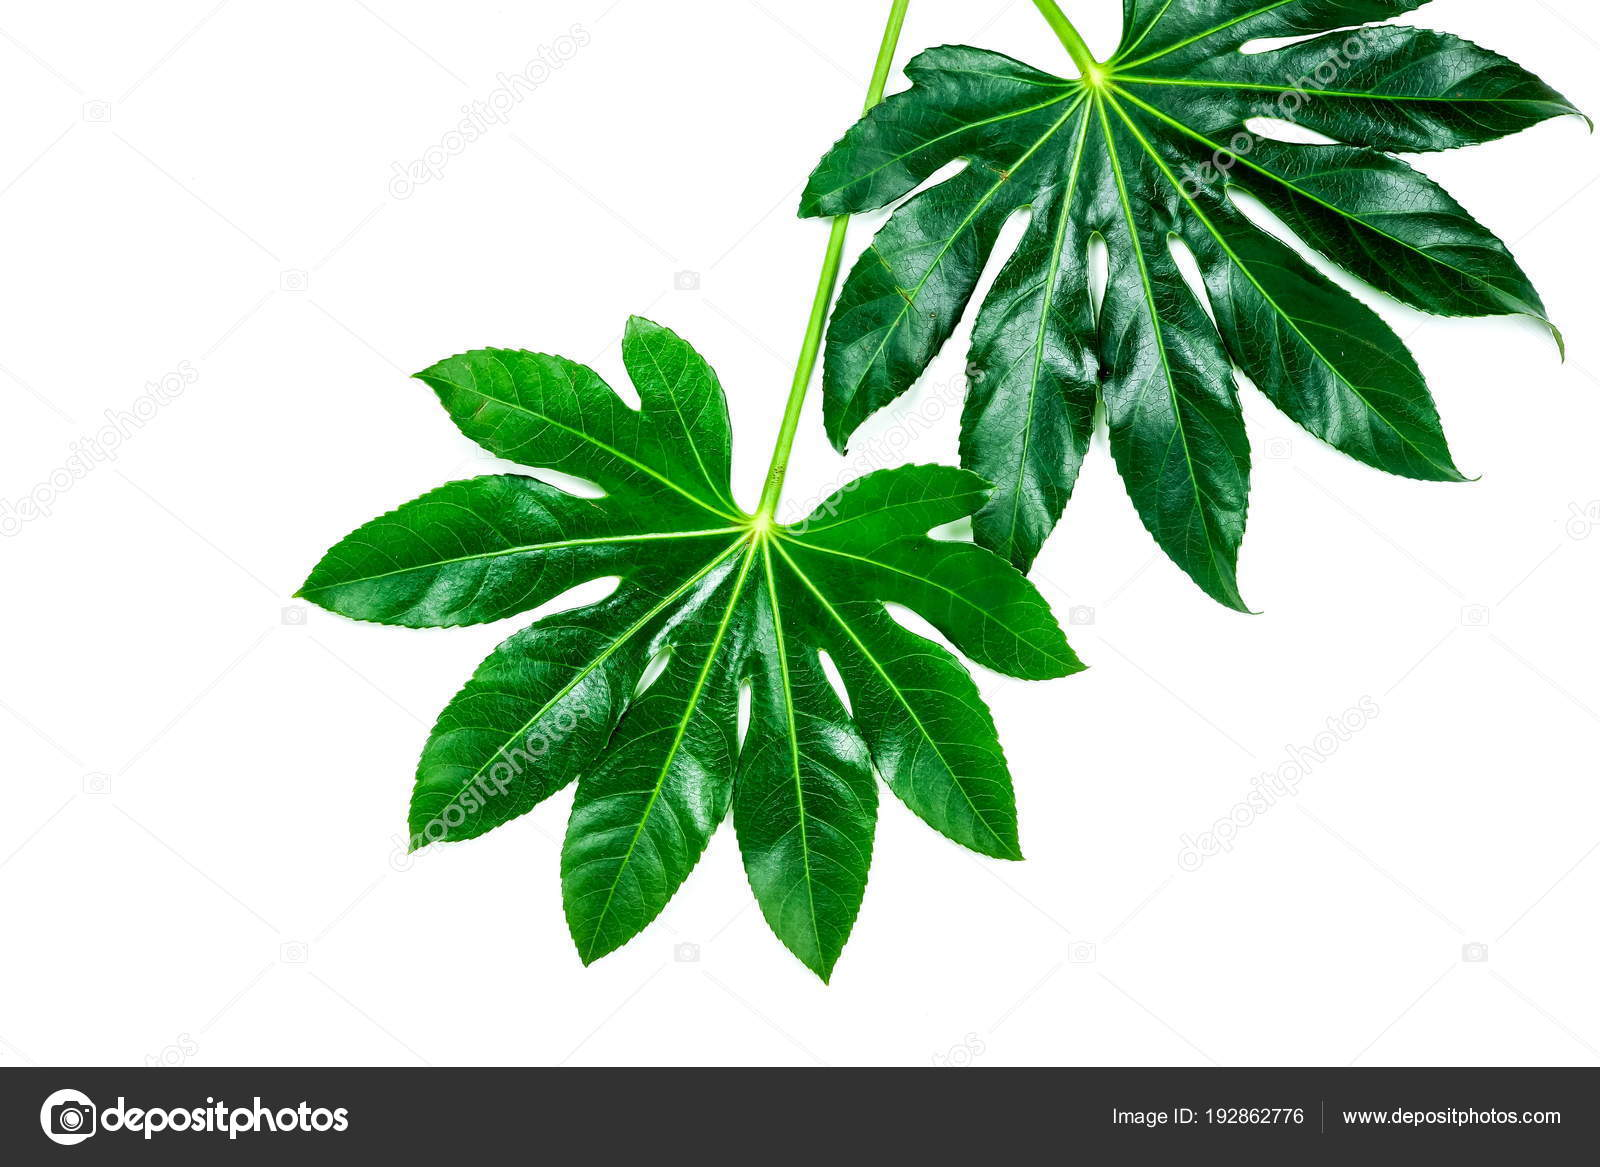 Abstract Frame Made Green Tropical Leaves White Background Flat Lay Stock Photo C Si 27star 192862776 Orchid tropical leaves and flowers background. abstract frame made green tropical leaves white background flat lay stock photo c si 27star 192862776